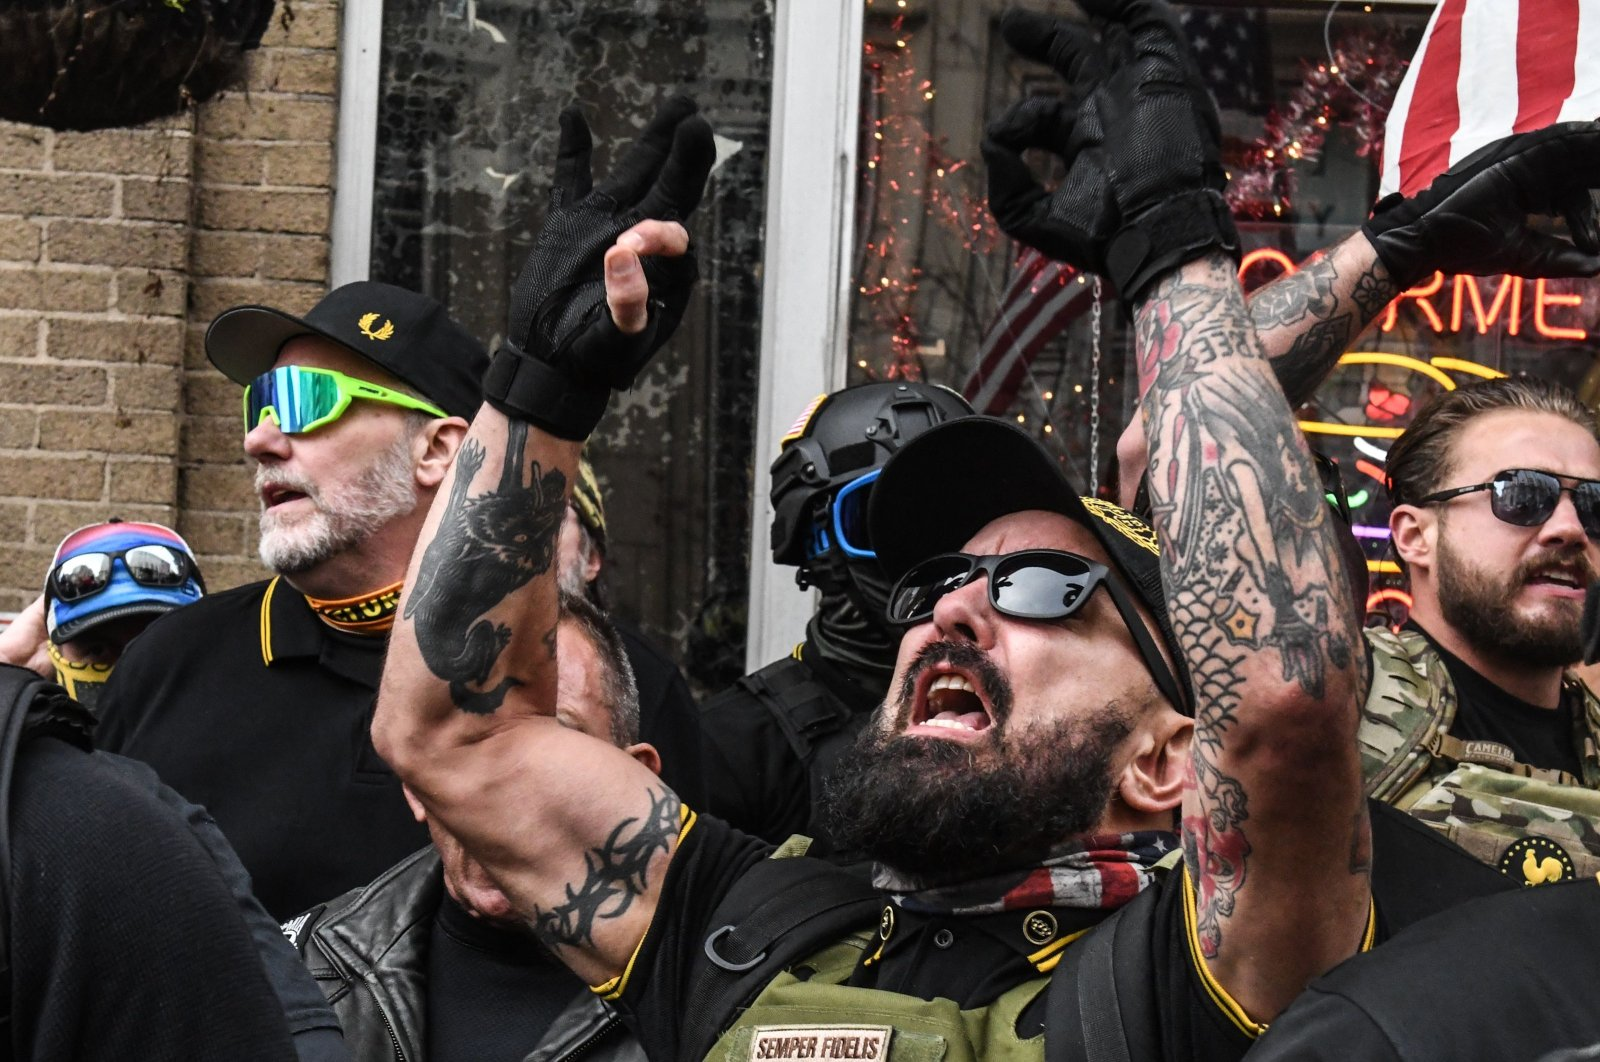 Members of the Proud Boys gather outside of Harry's bar during a protest in Washington, D.C. on Dec. 12, 2020. (AFP Photo)